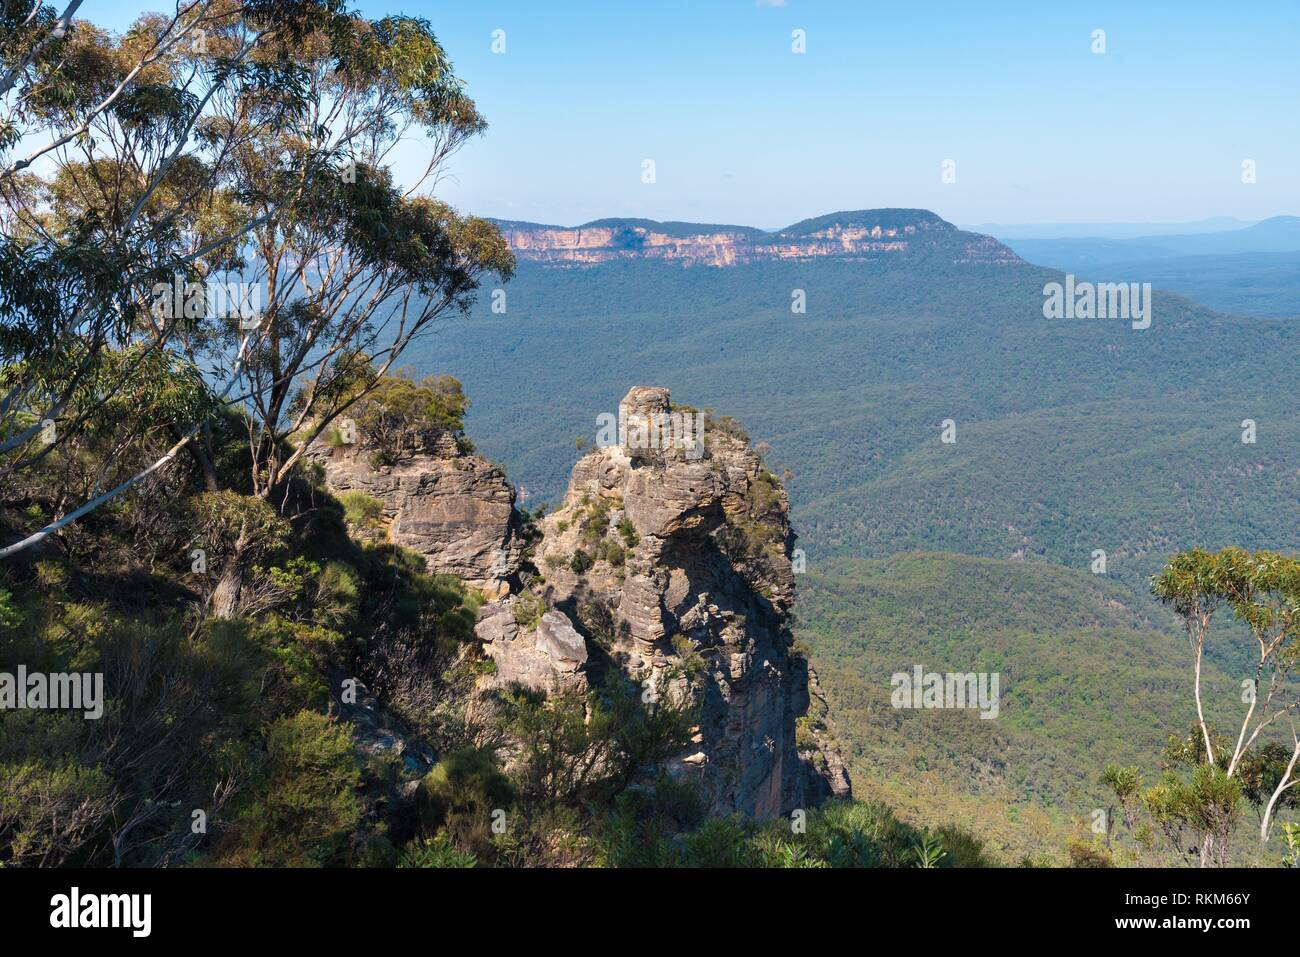 View over Jamison Valley and Three Sisters rock formation in Katoomba, Blue Mountains, New South Wales, Australia. Stock Photo